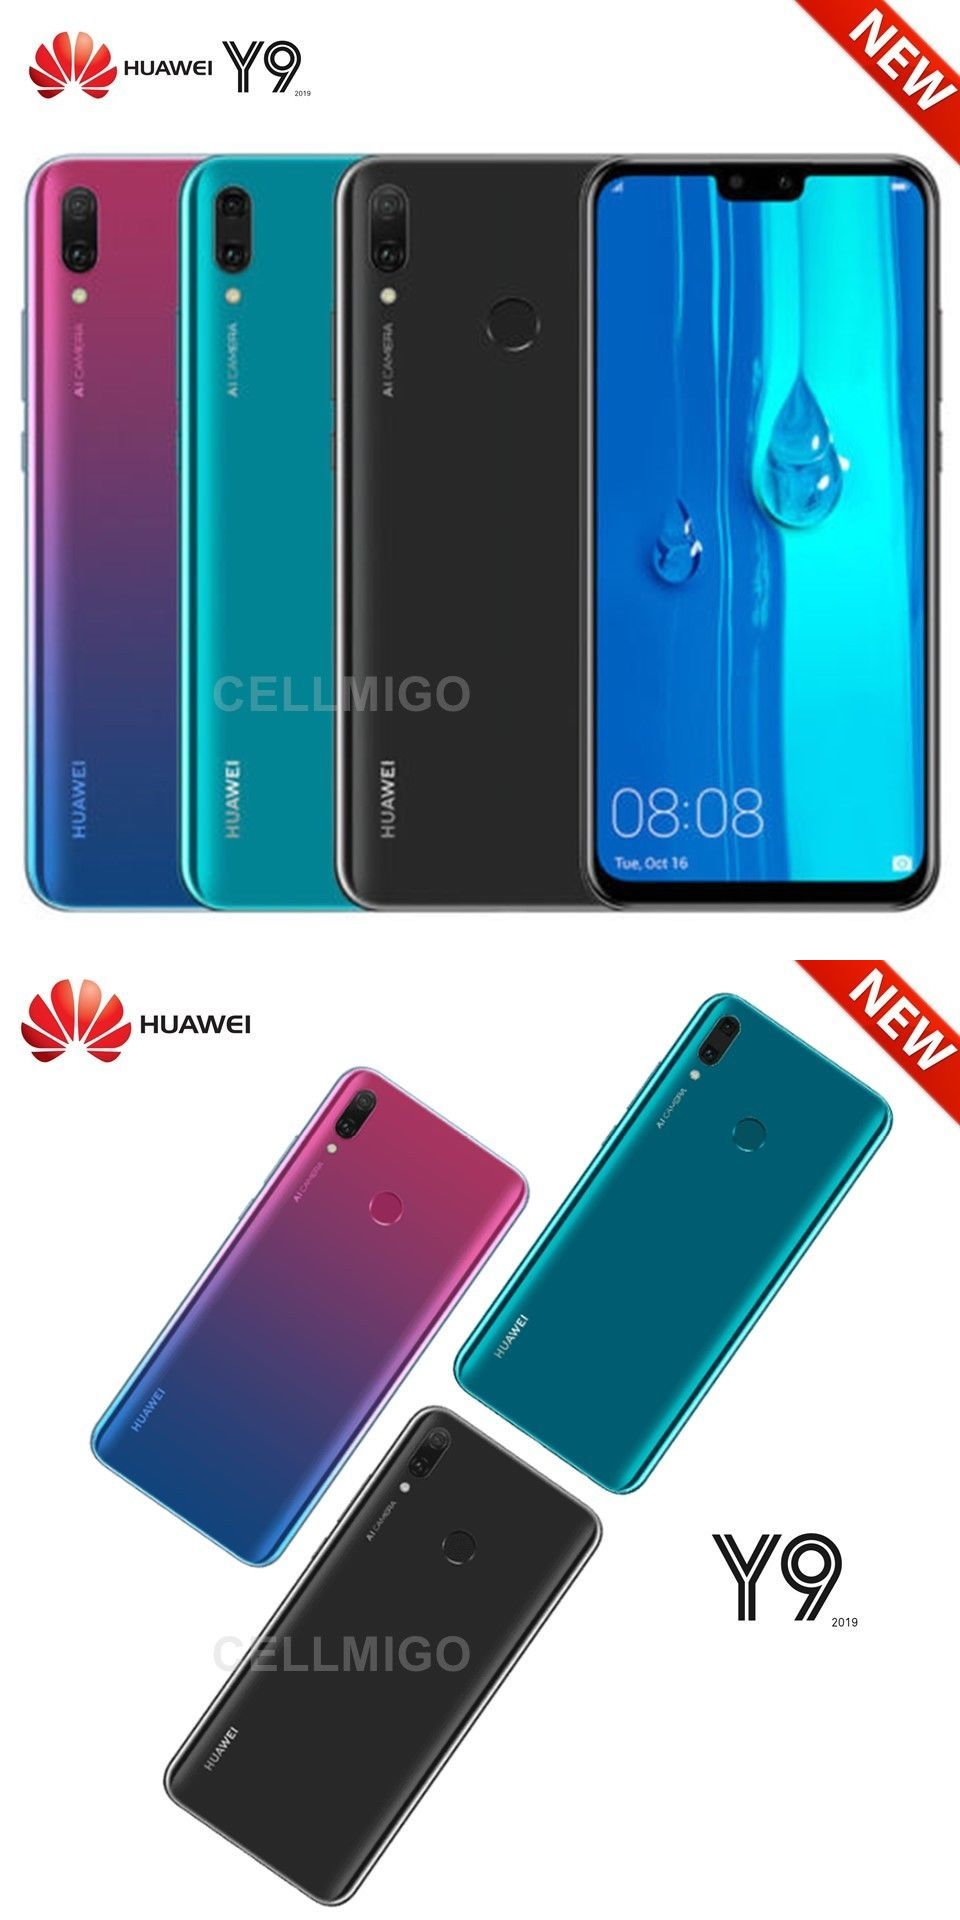 ecfd46e8590 Cell Phones and Smartphones 9355: Huawei Y9 2019 (64Gb) 6.5 Display, 4  Camera S, 4G Lte Dual Sim Unlocked Jkm-Lx3 -> BUY IT NOW ONLY: $249.99 on  #eBay ...